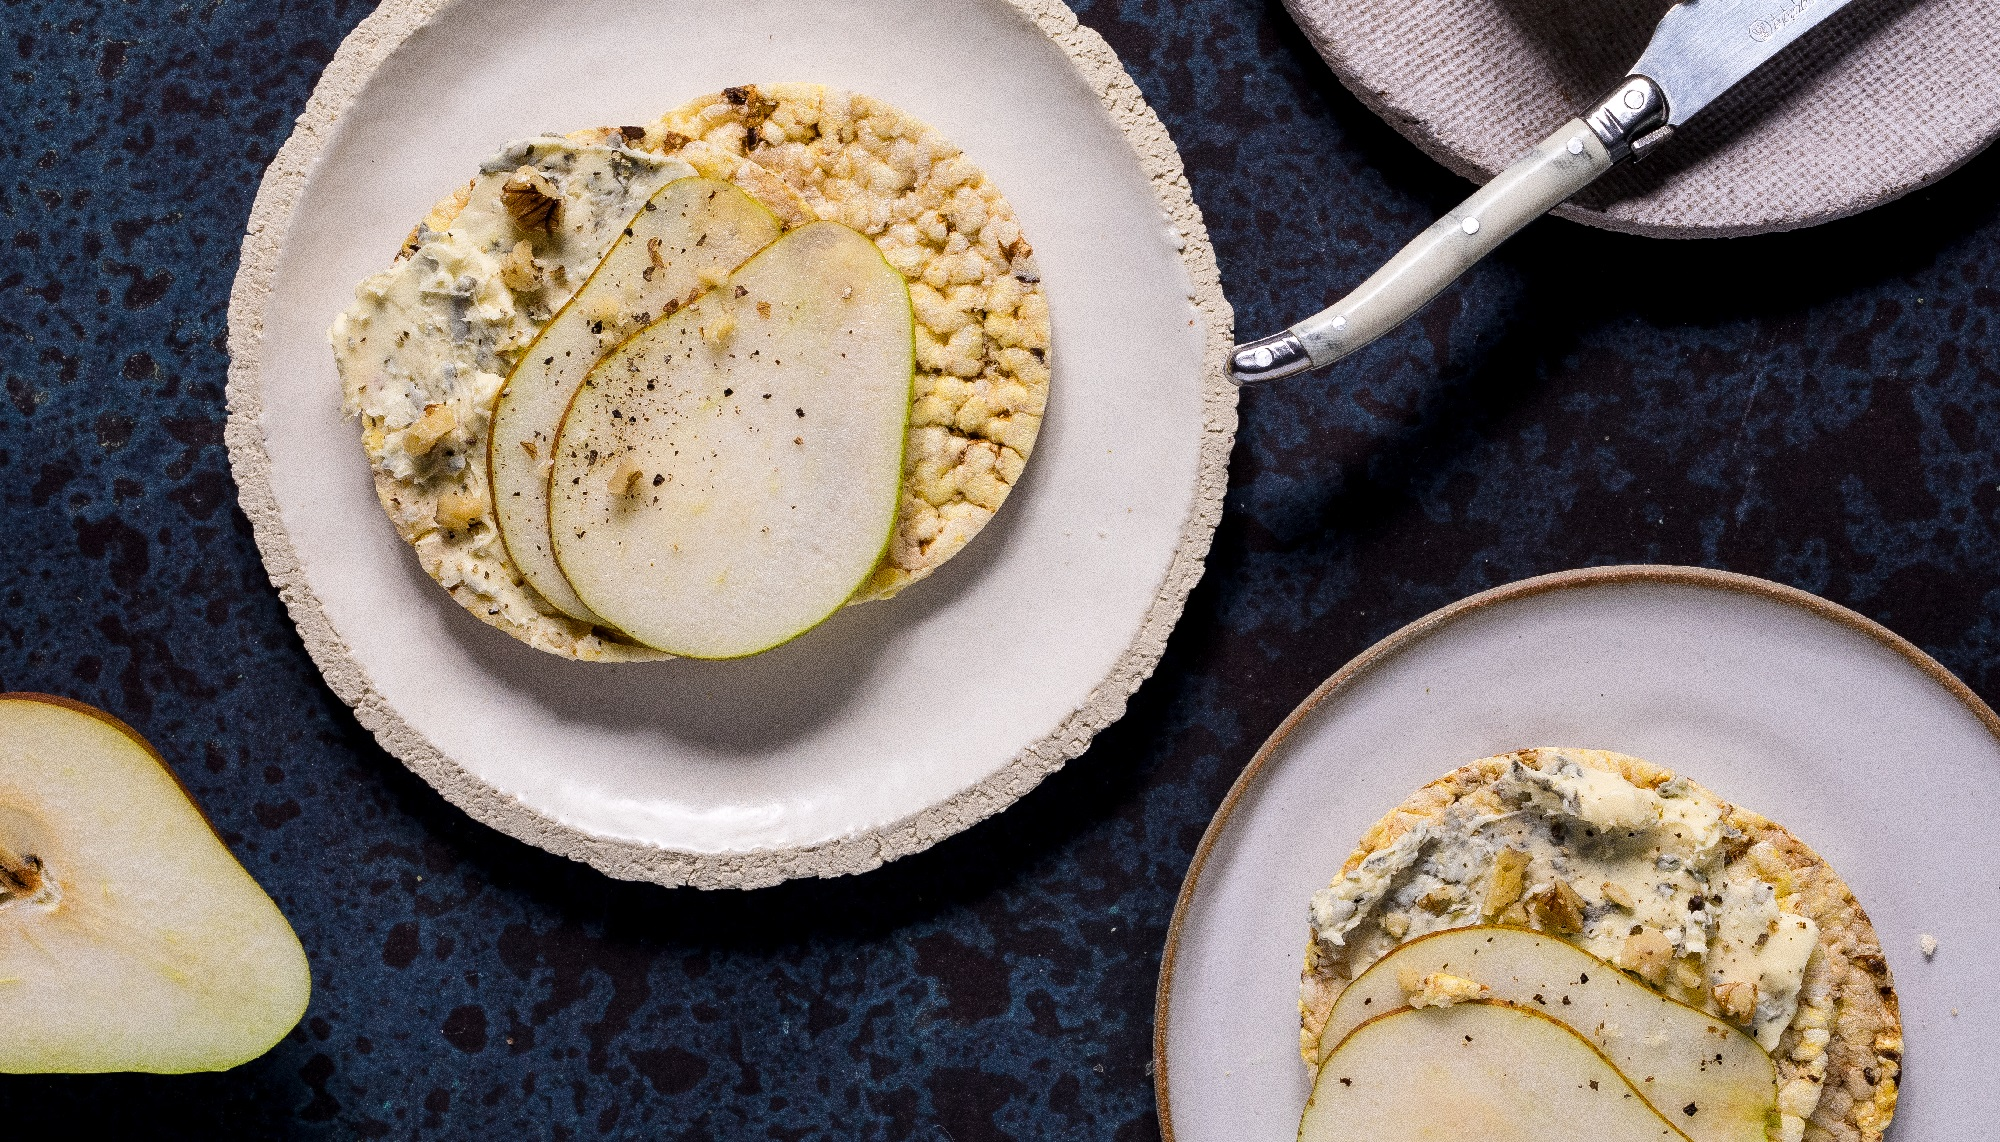 Blue Cheese, Pear & Walnut on CORN THINS slices